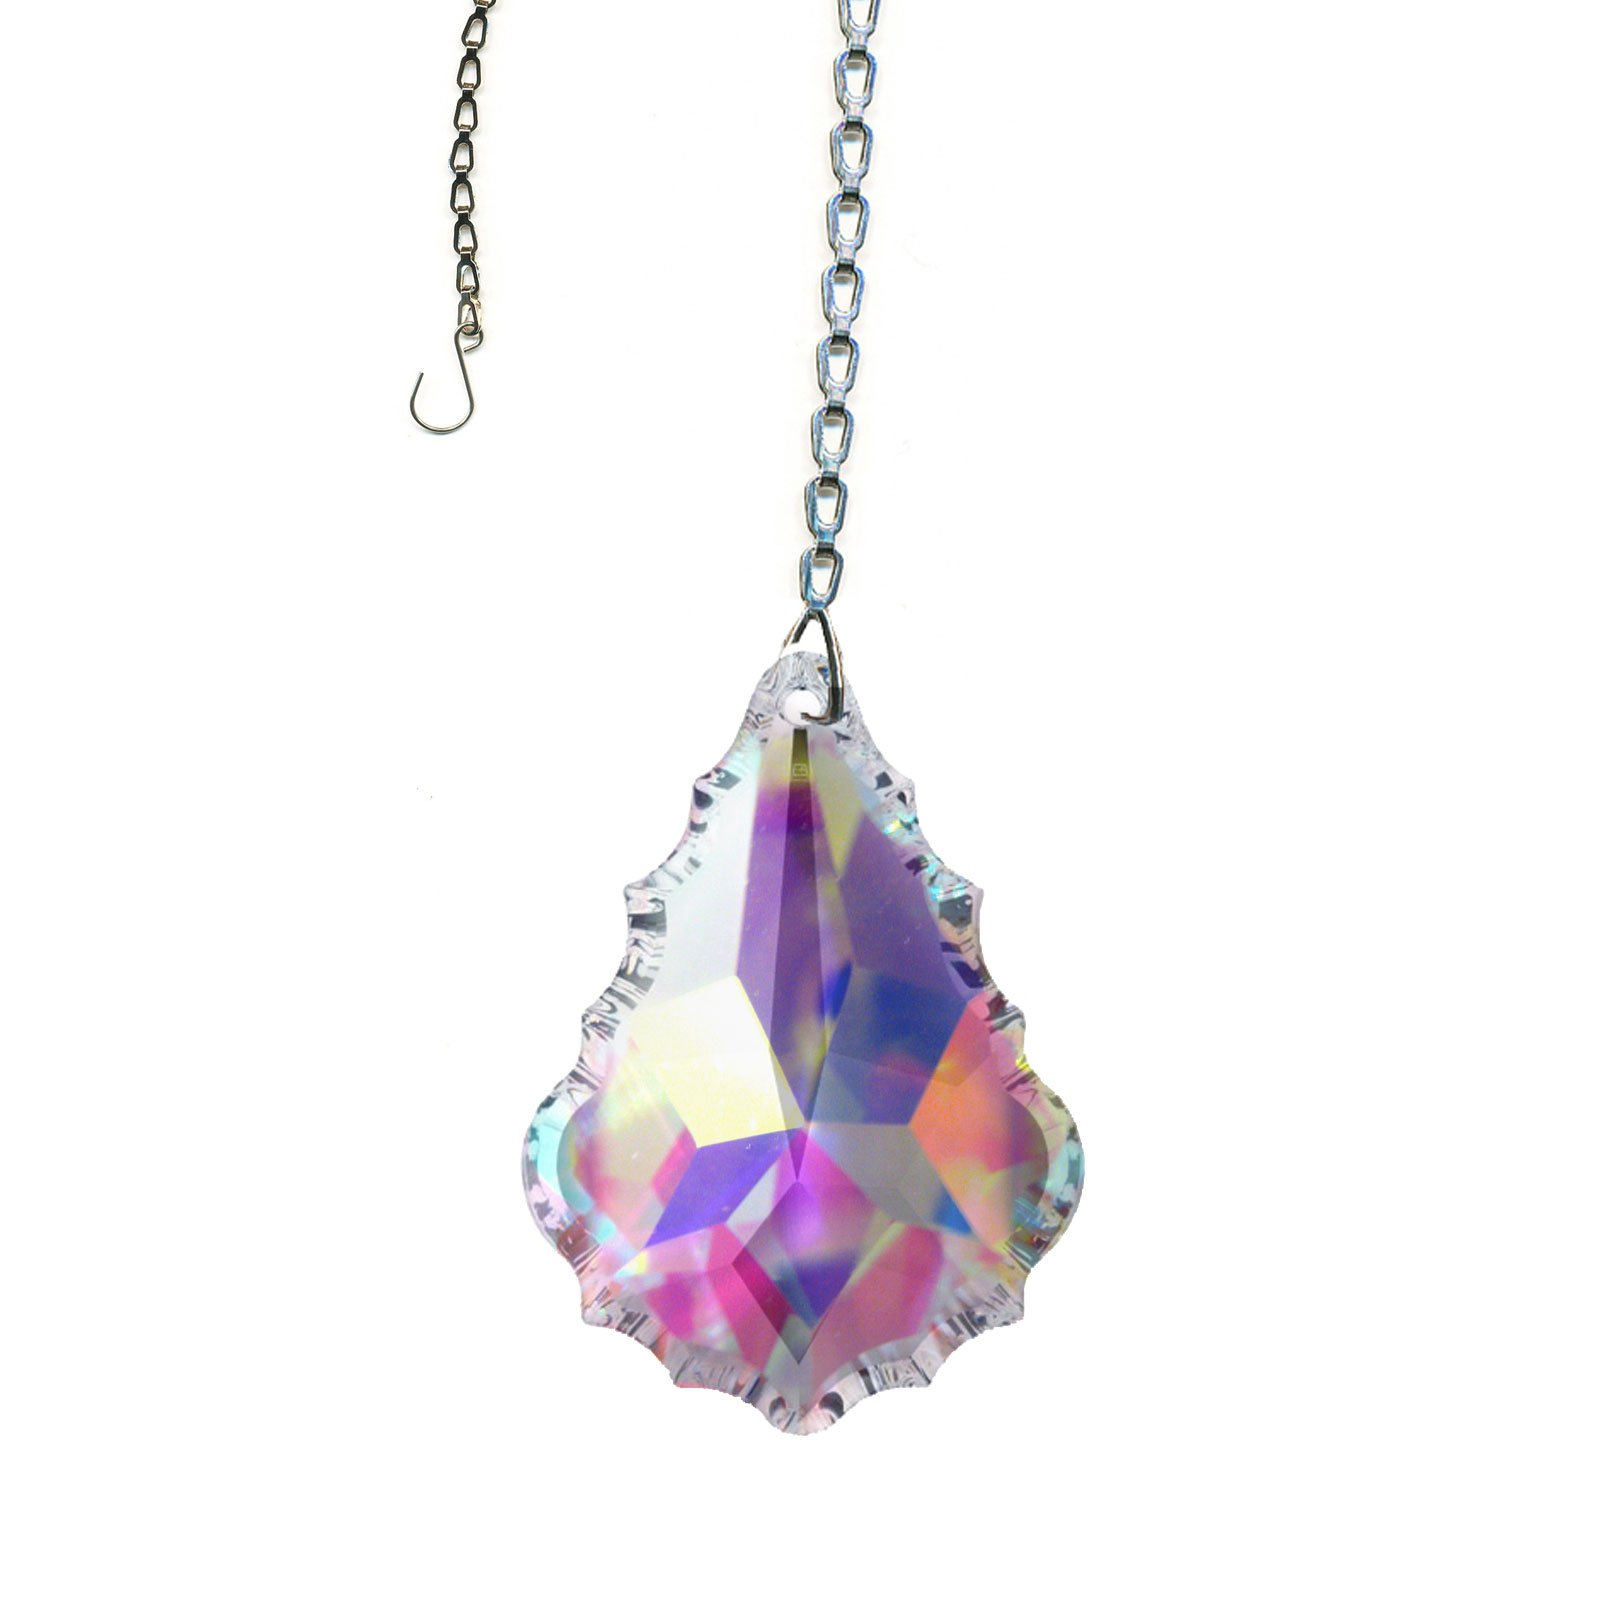 Swarovski crystal Sun Catcher, 2 Inches AB Pendaloque Crystal with Amazing Shine & Rainbow Includes Chain & Suction Cup